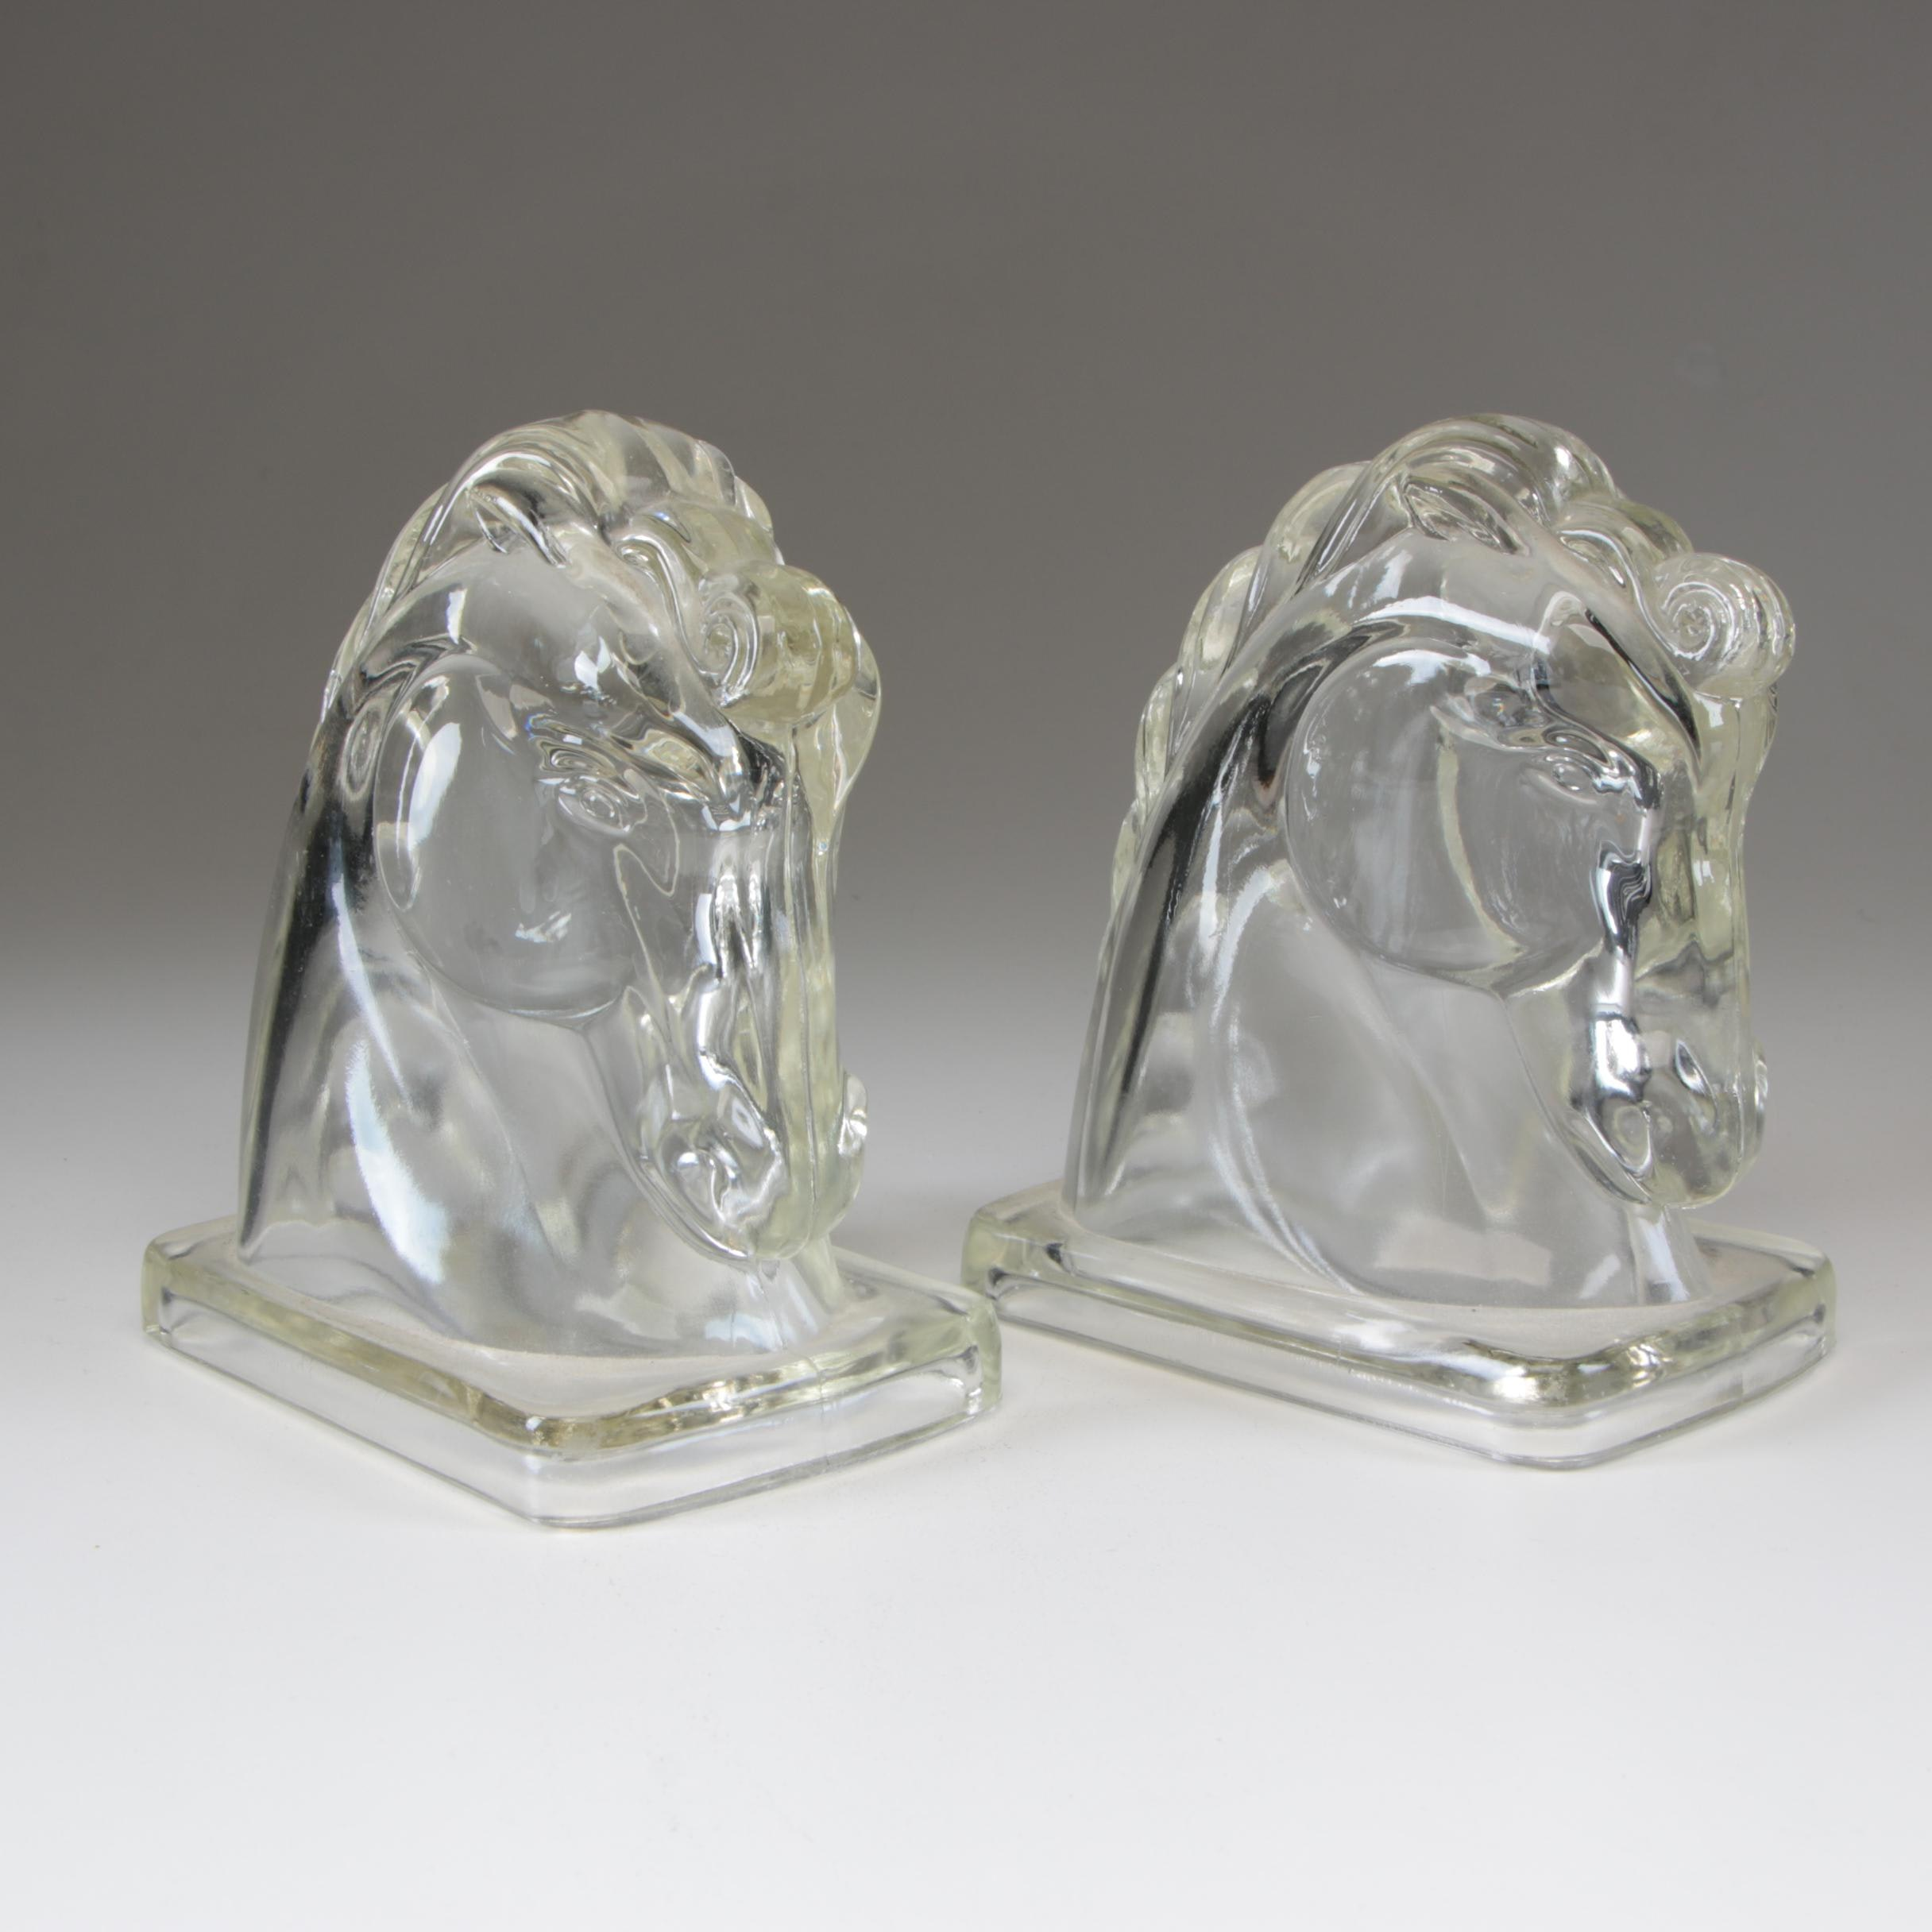 Pressed Glass Horse Bookends Attributed to Federal Glass, Circa 1930s